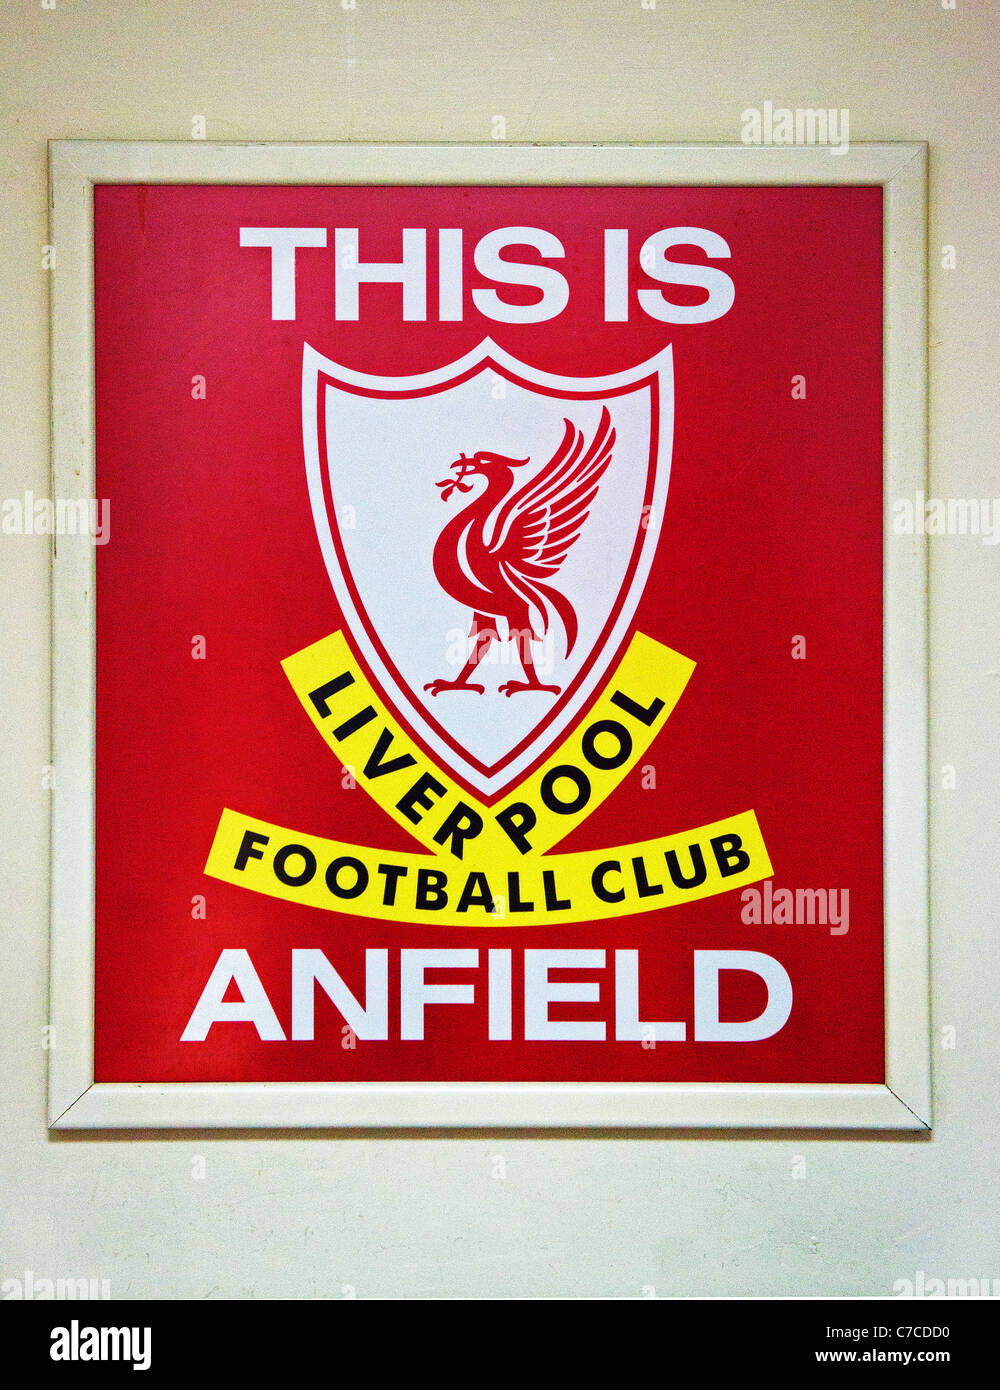 The famous ' this is anfield ' sign in the players tunnel at Anfield, home of Liverpool football club, England, - Stock Image